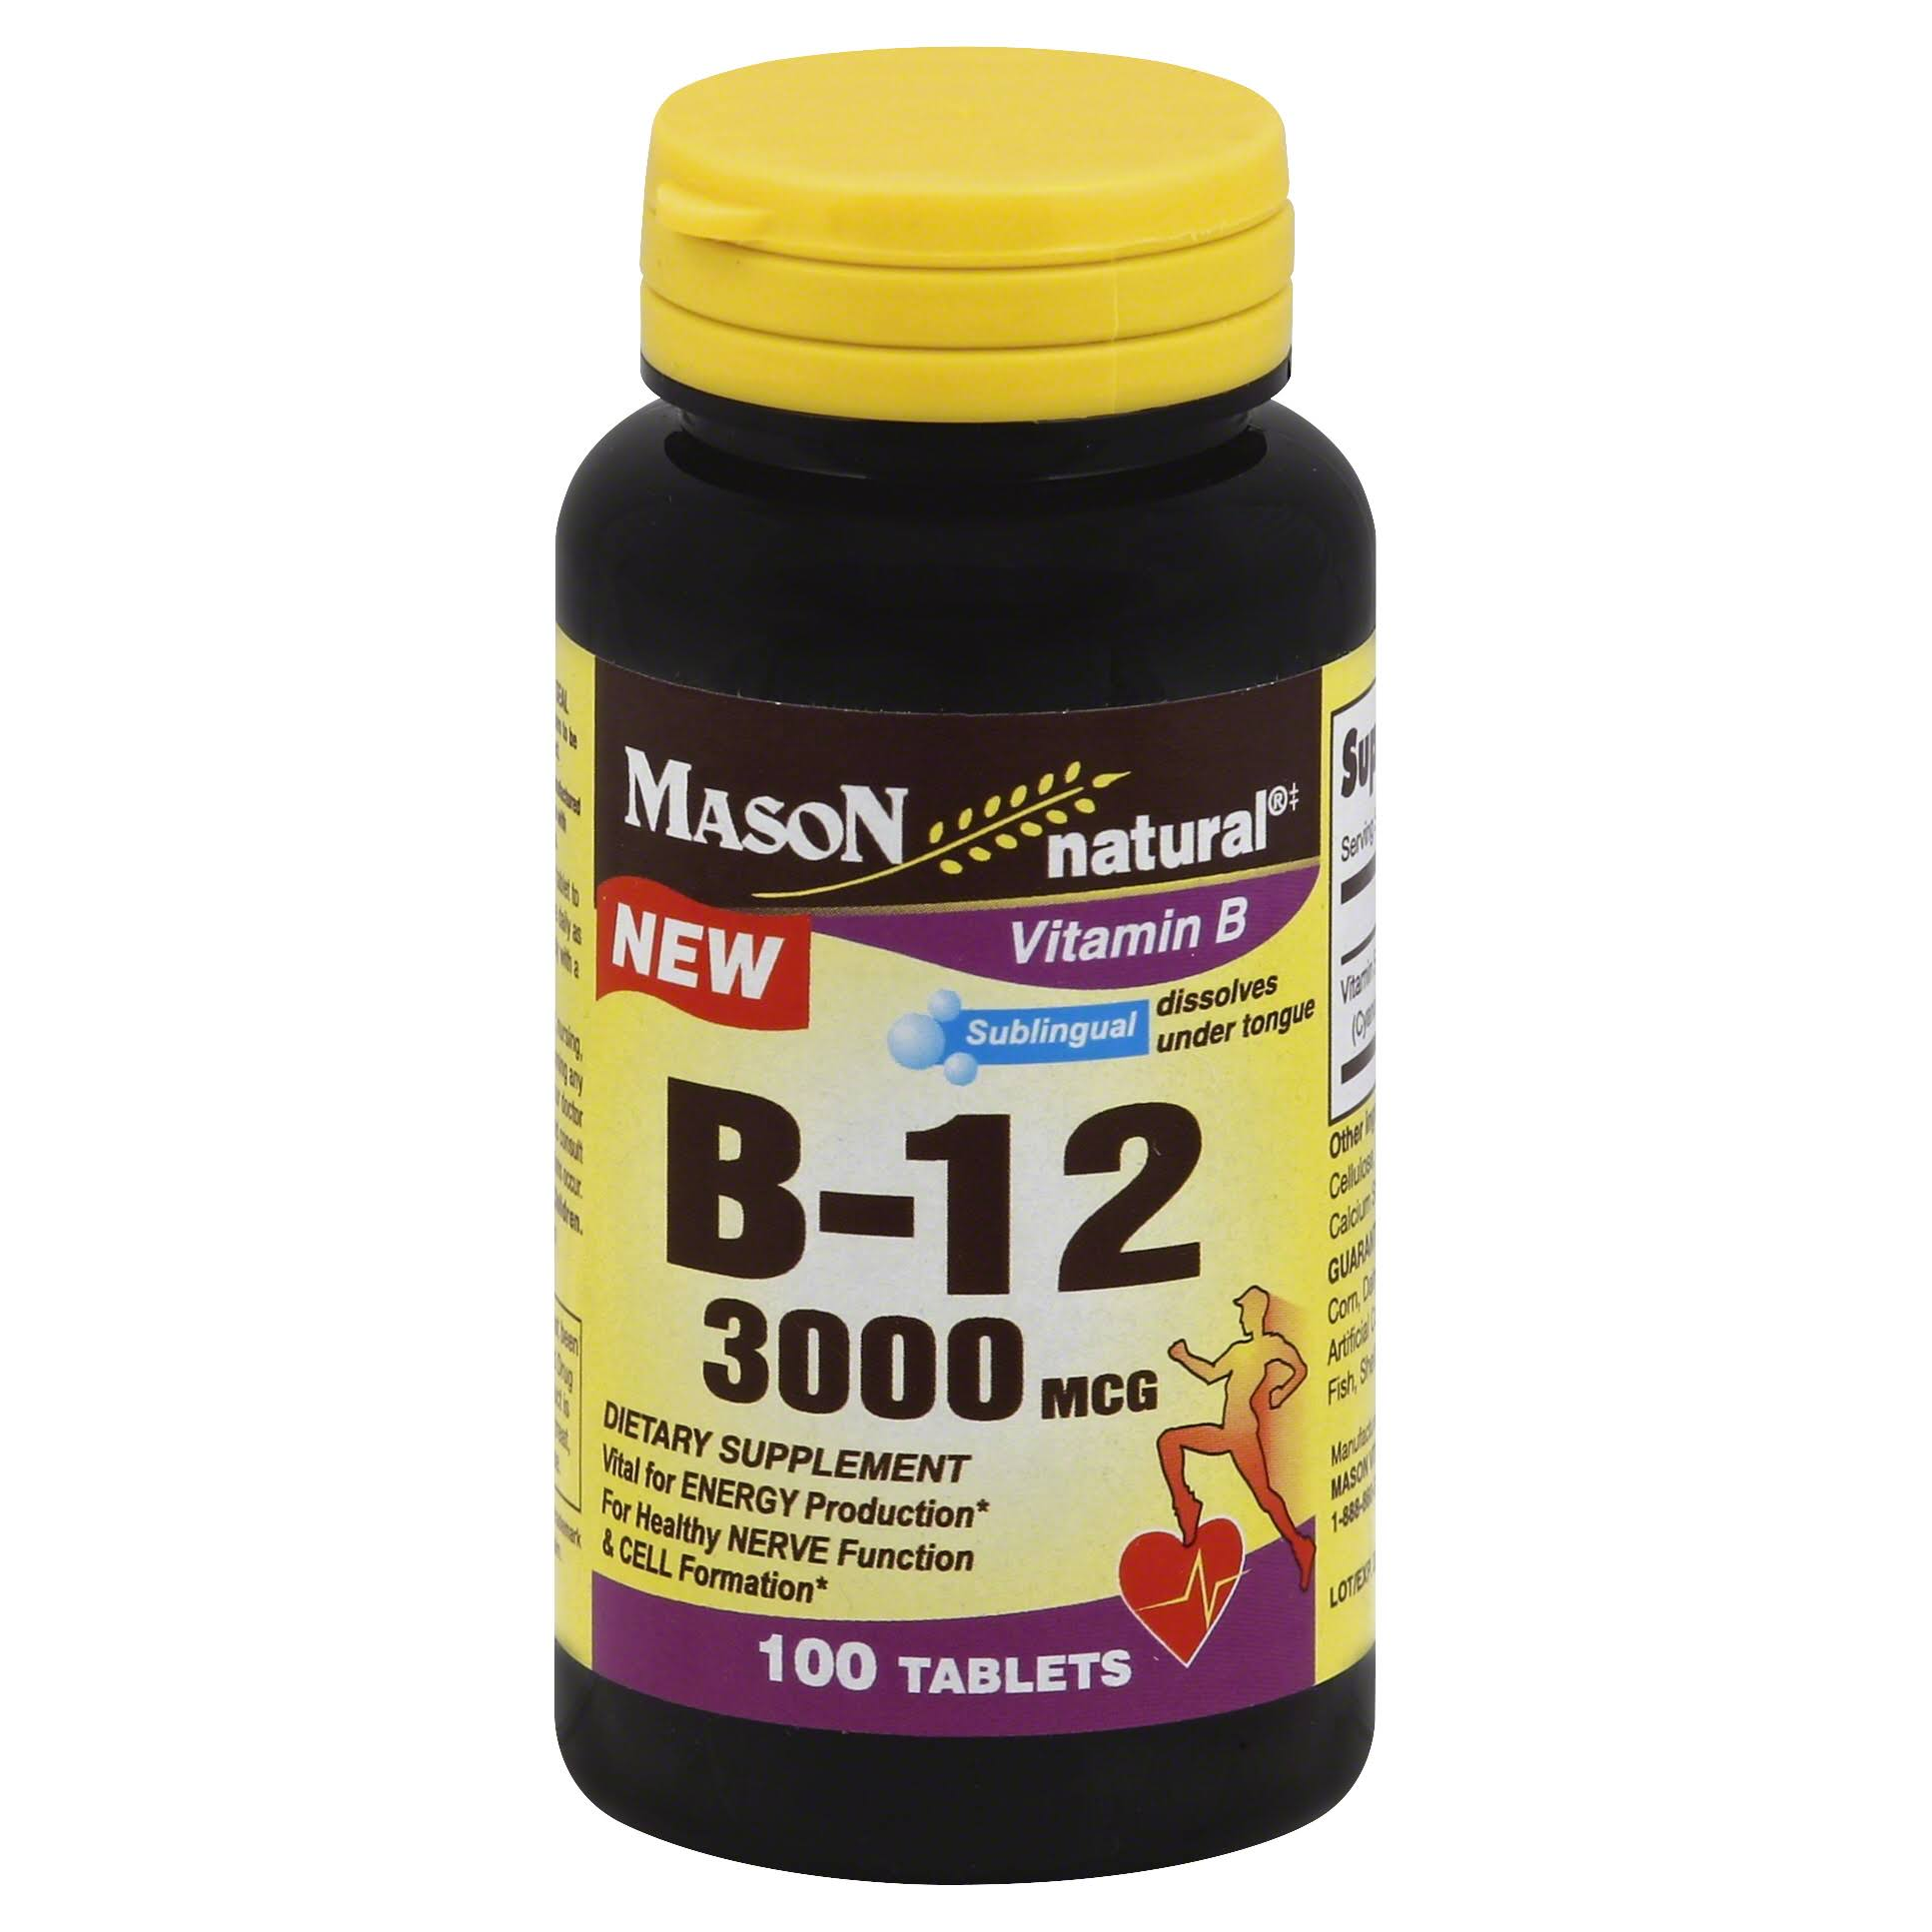 Mason Natural Vitamin B 12 Tablets - 3000mcg, 100ct